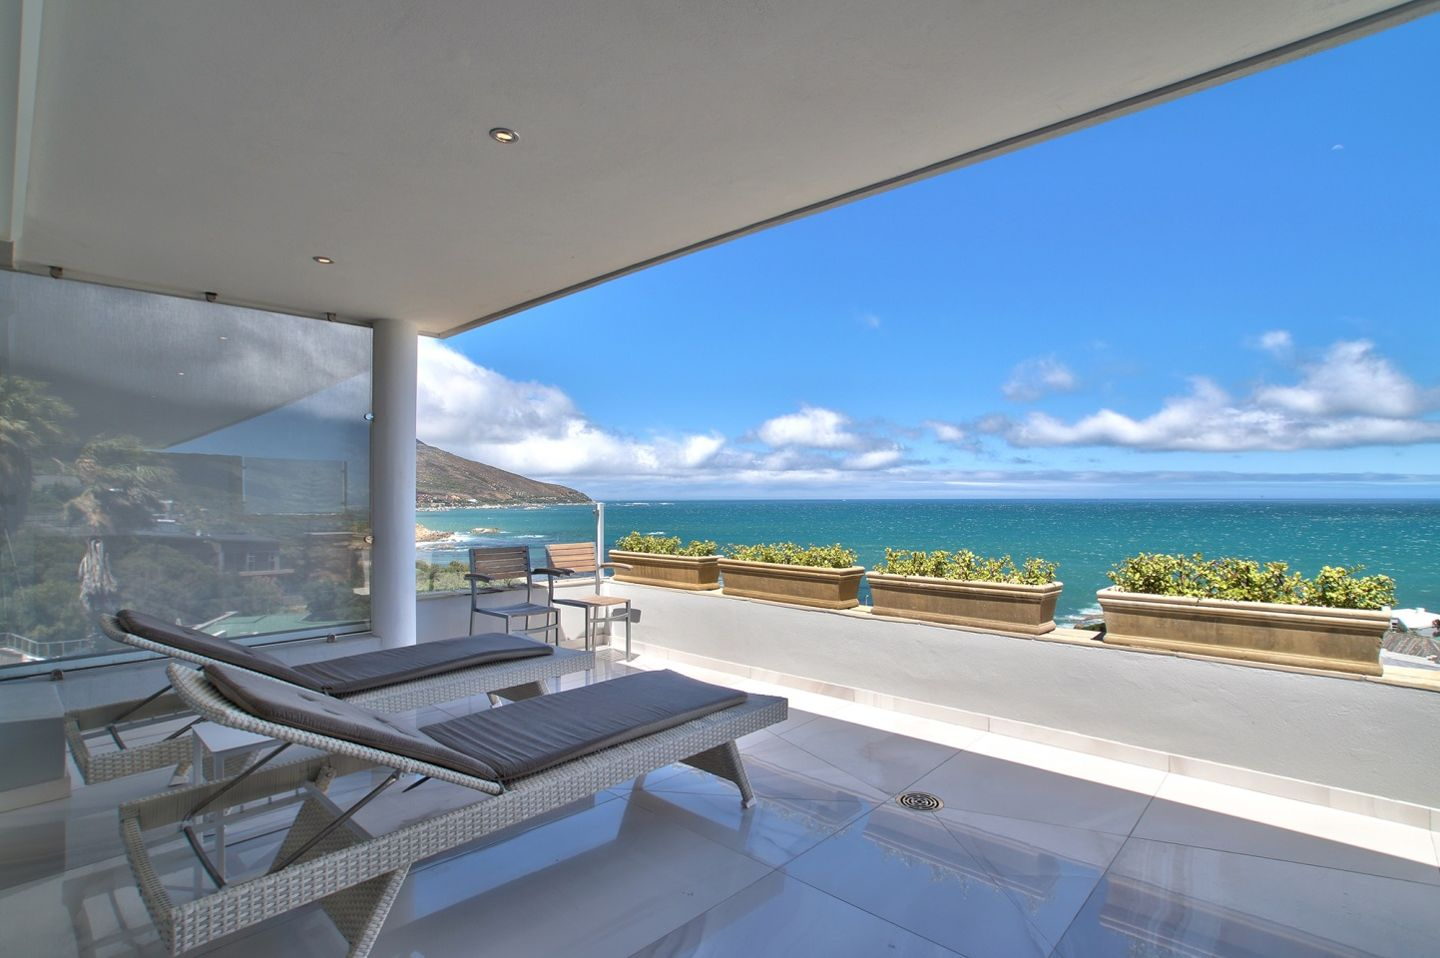 Ocean View House Cape Town South Africa